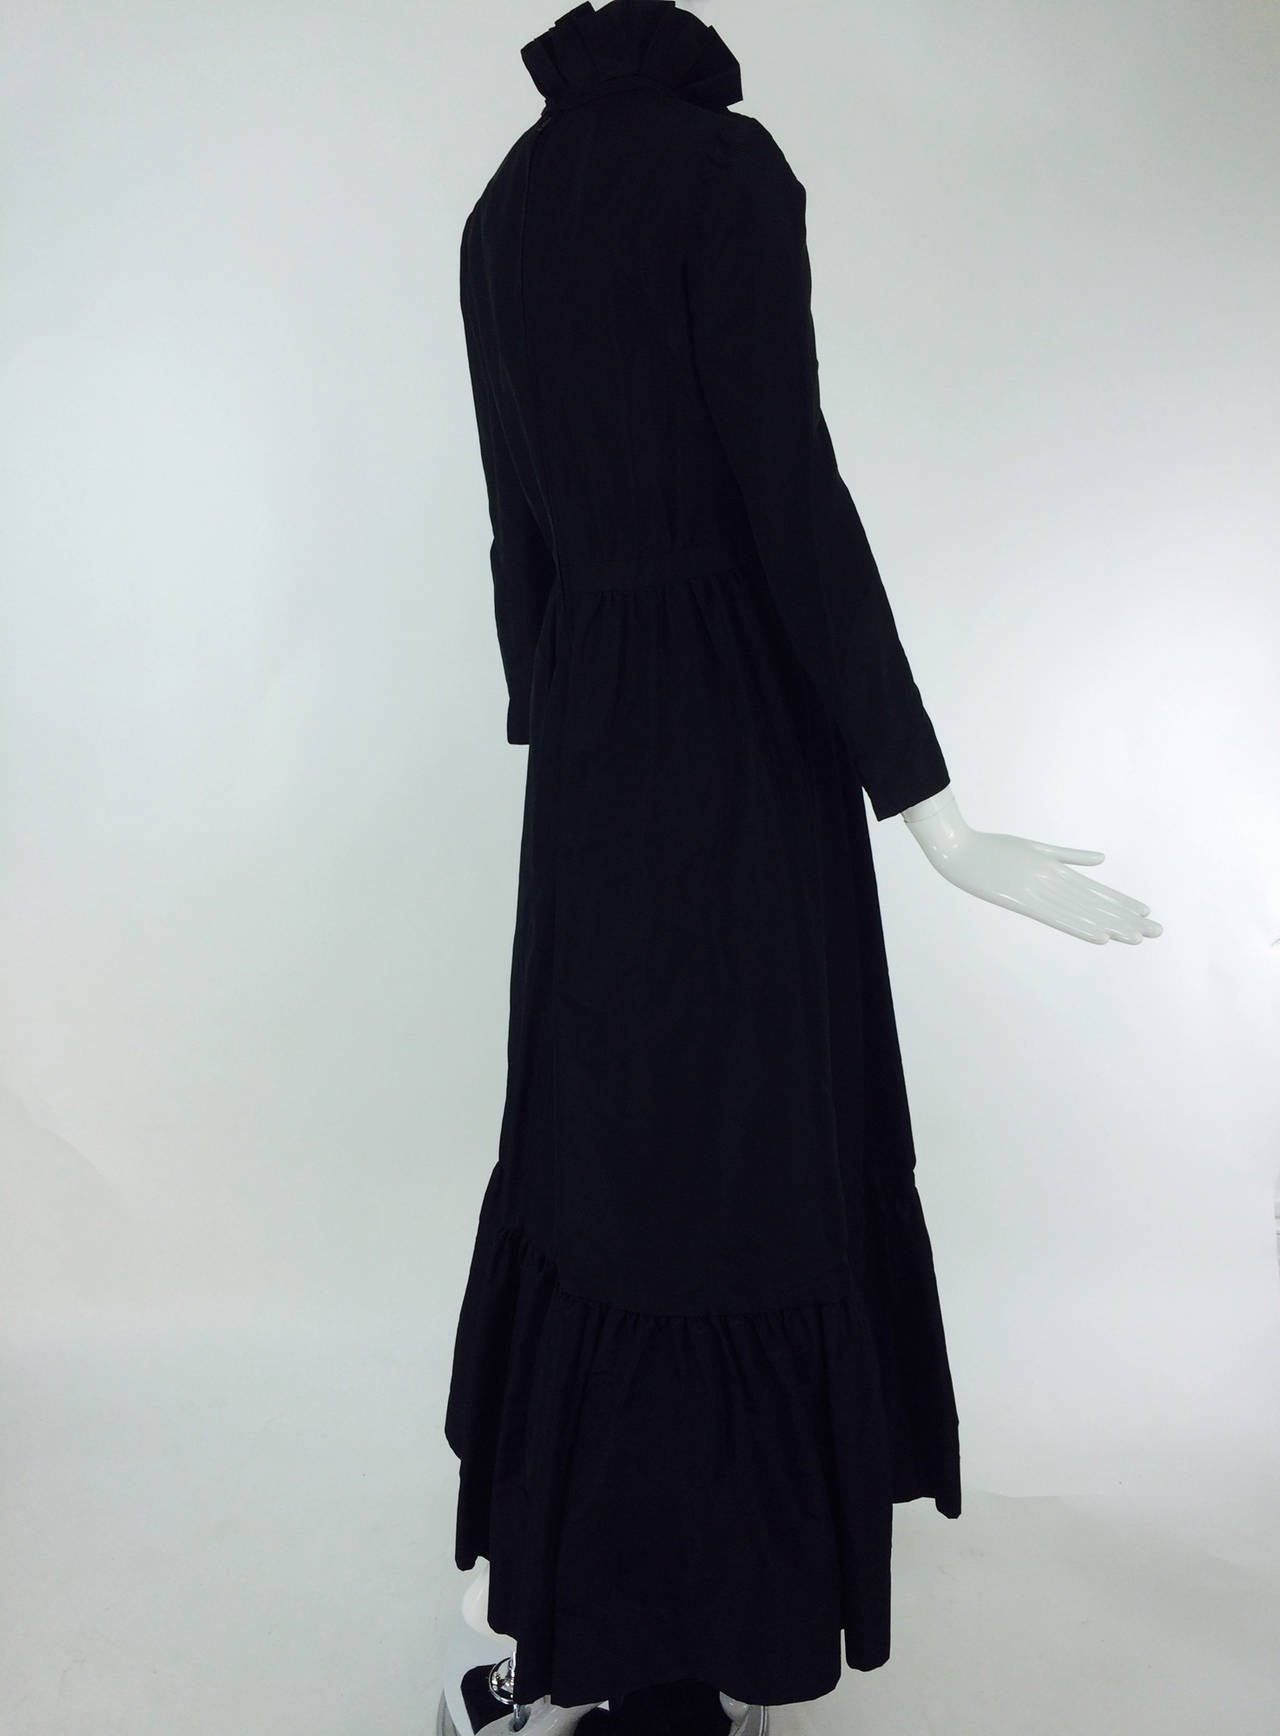 Shannon Rodgers for Jerry Silverman black Victorian style gown 1960s 7